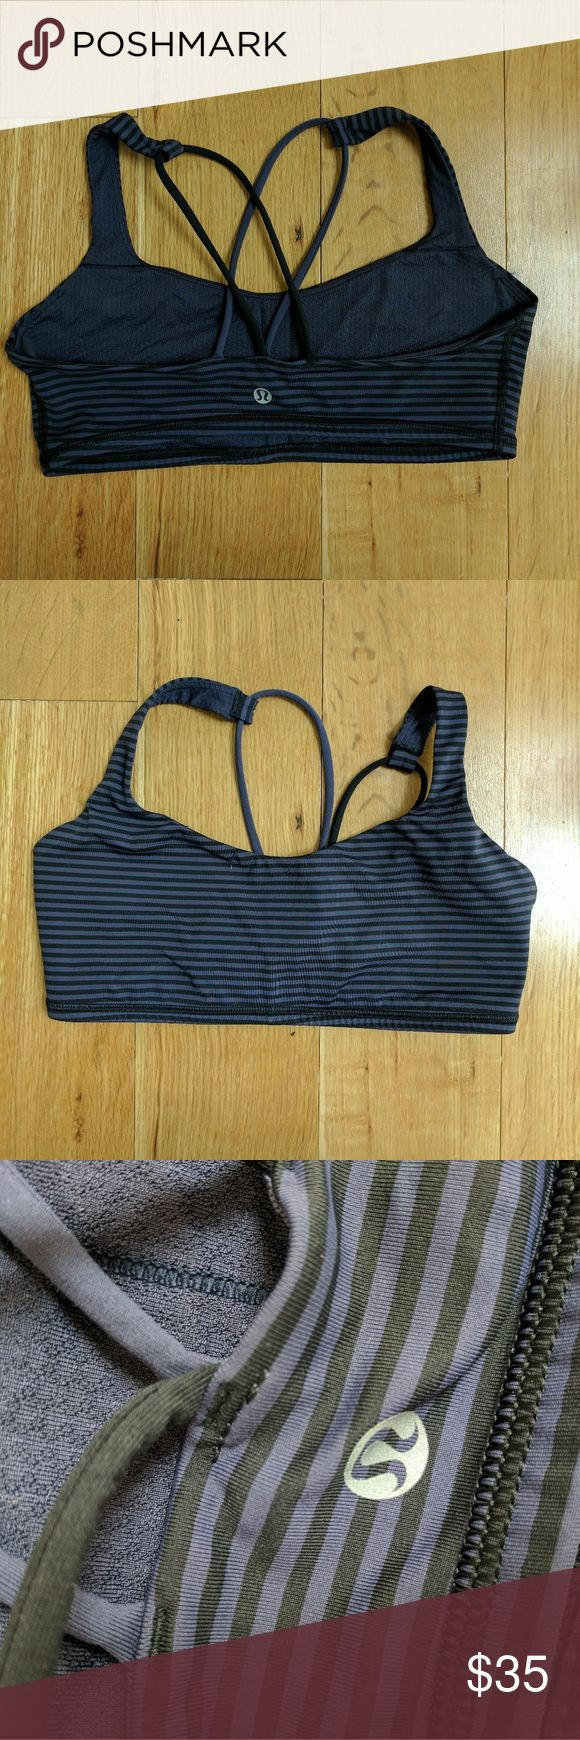 Lululemon free to be striped sports bra Excellent used condition! Lululemon size 8 though I usually find their sports bras to fit small to size so listing as a S lululemon athletica Intimates & Sleepwear Bras